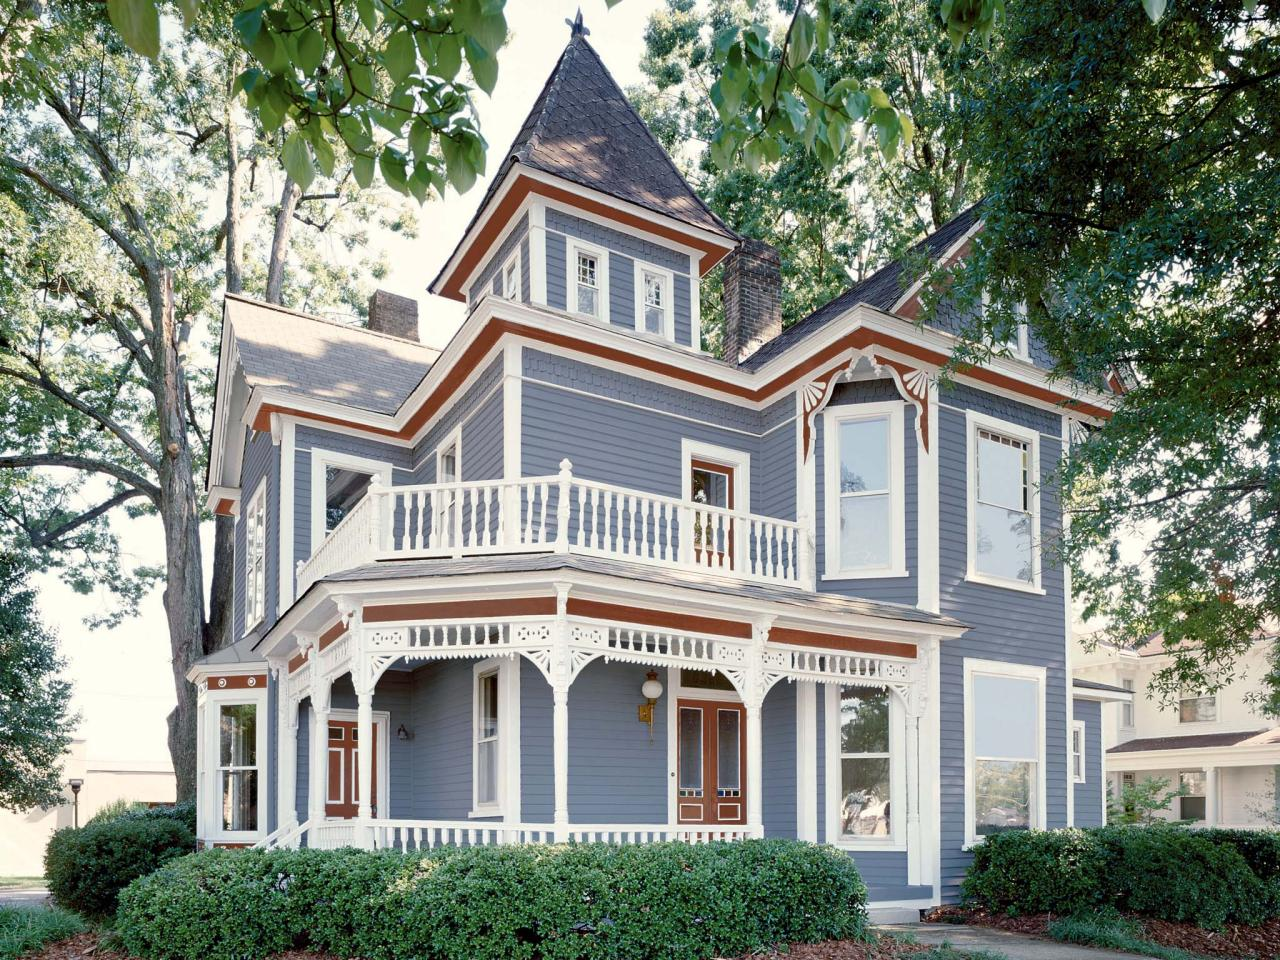 house exterior colors how to select exterior paint colors for a home KNIKDZB